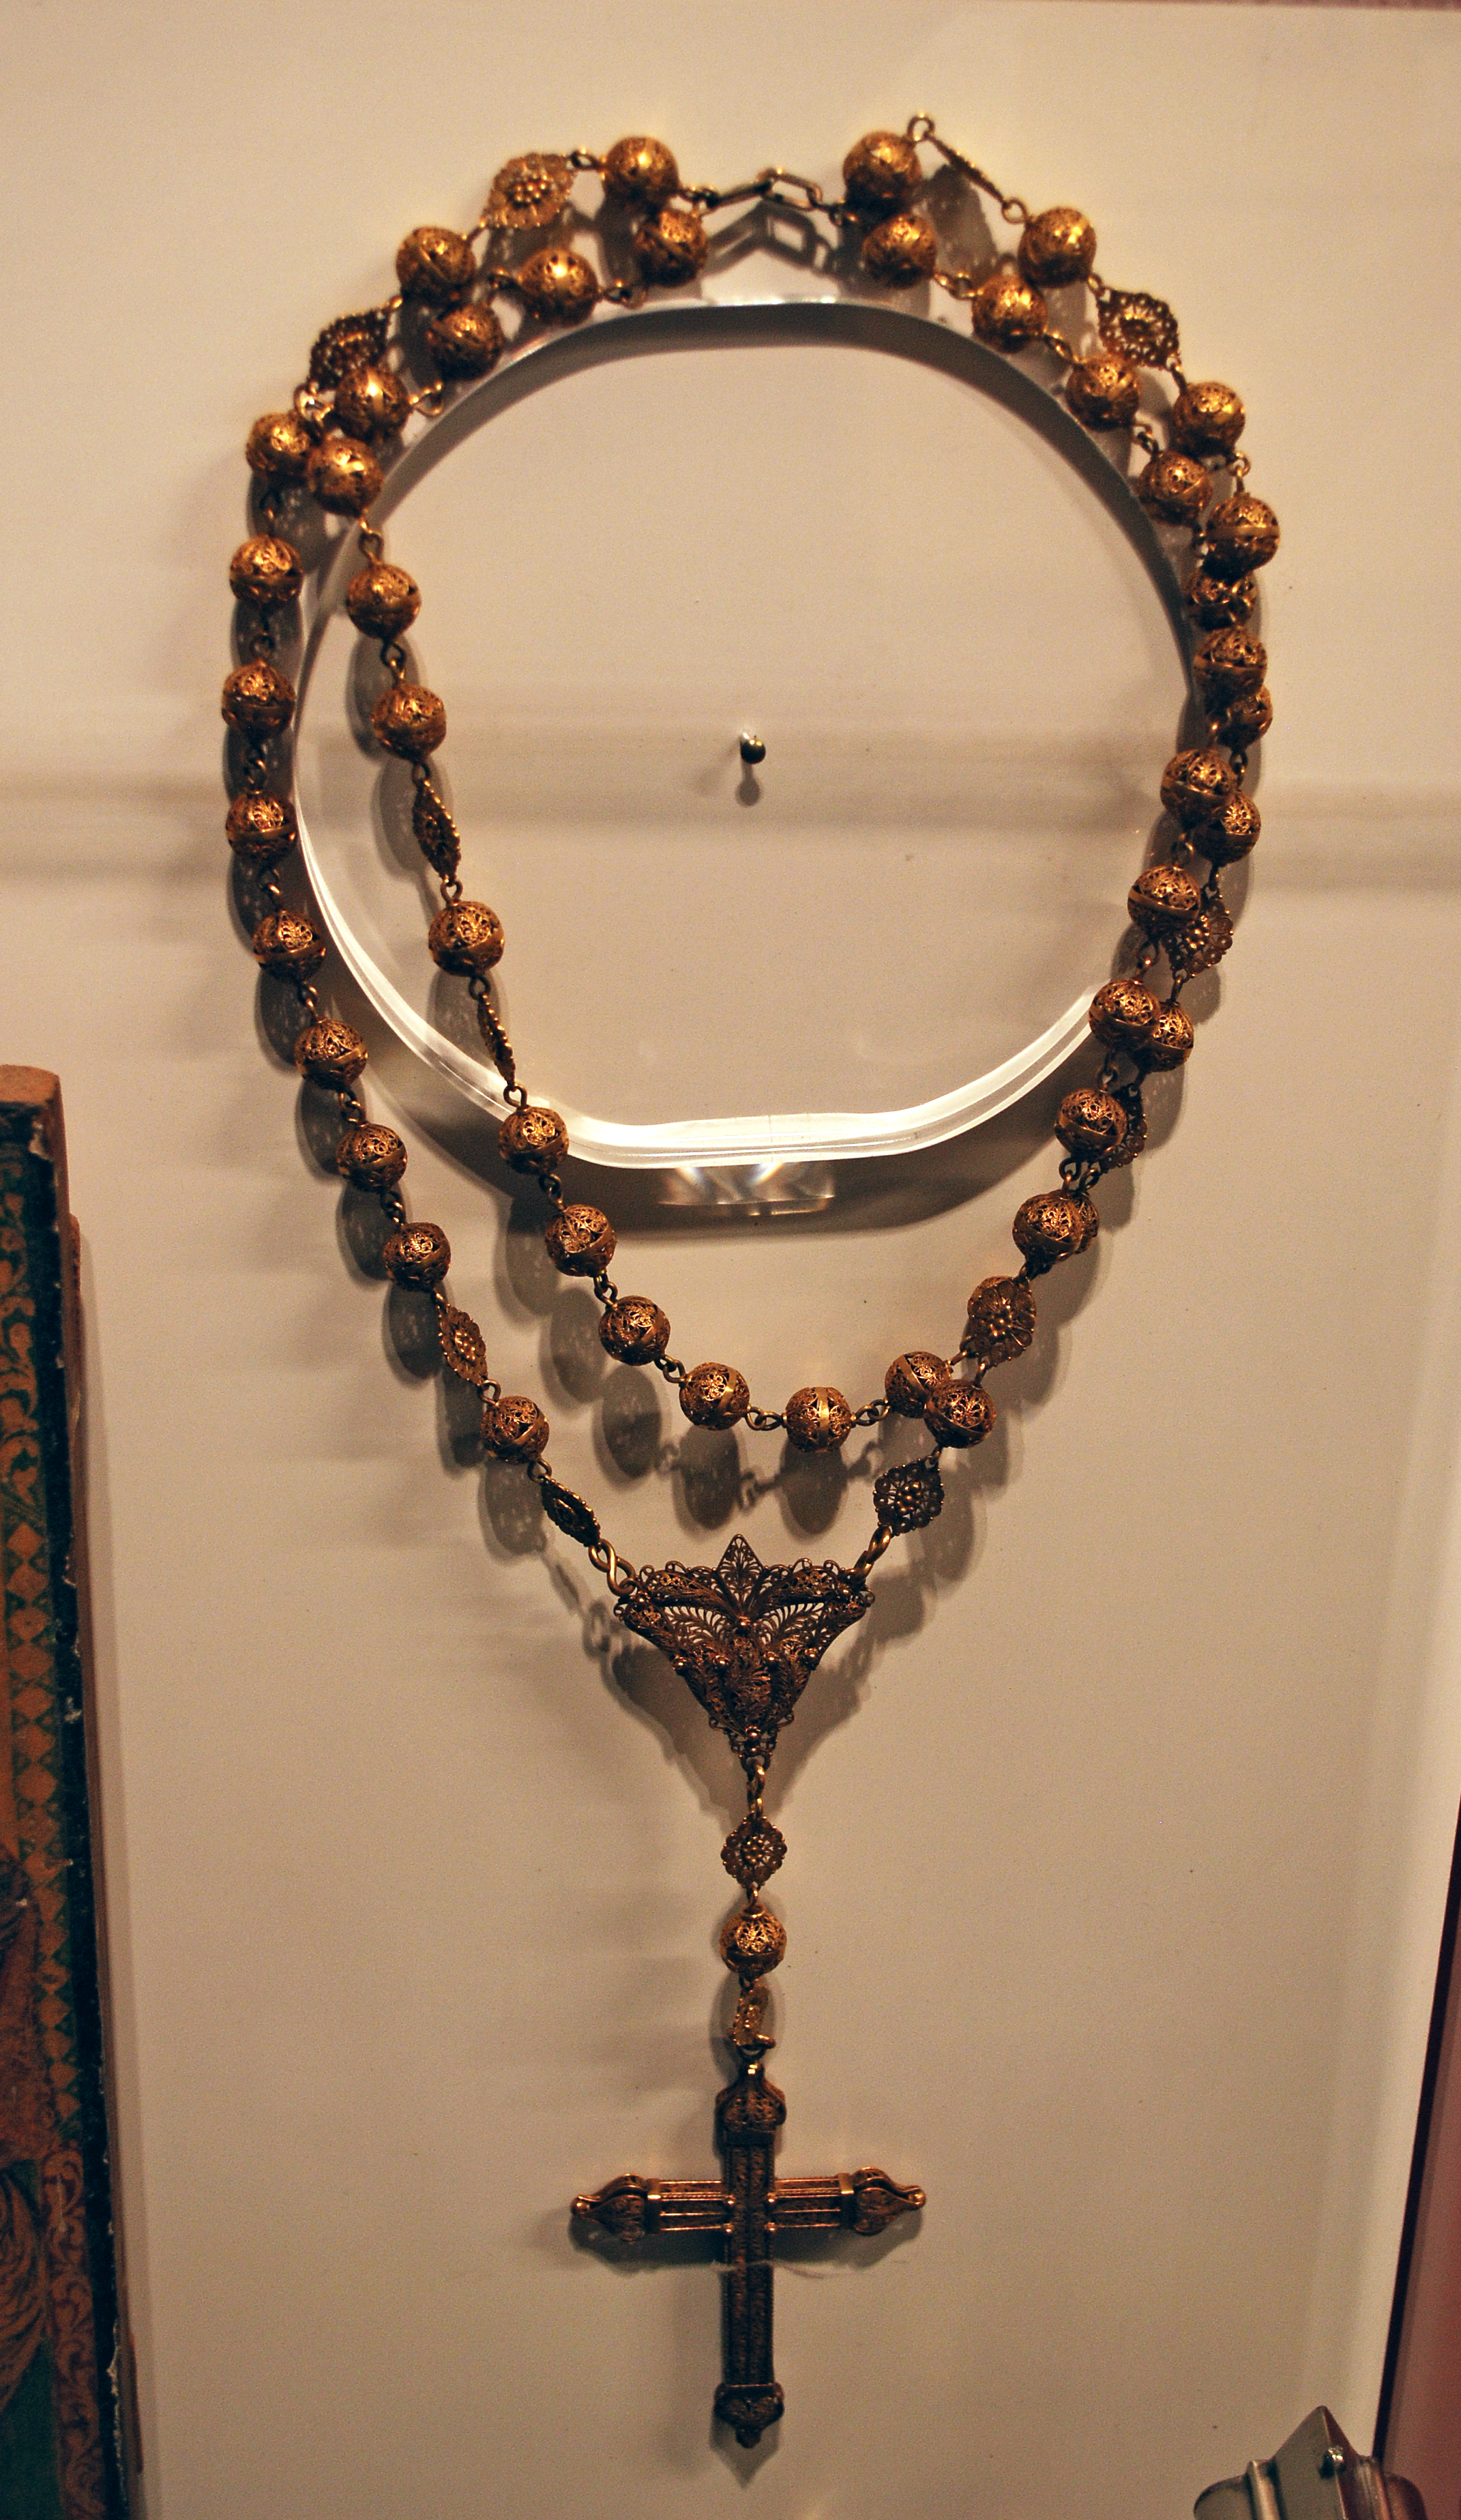 Object: Rosary | UTSA Institute Of Texan Cultures